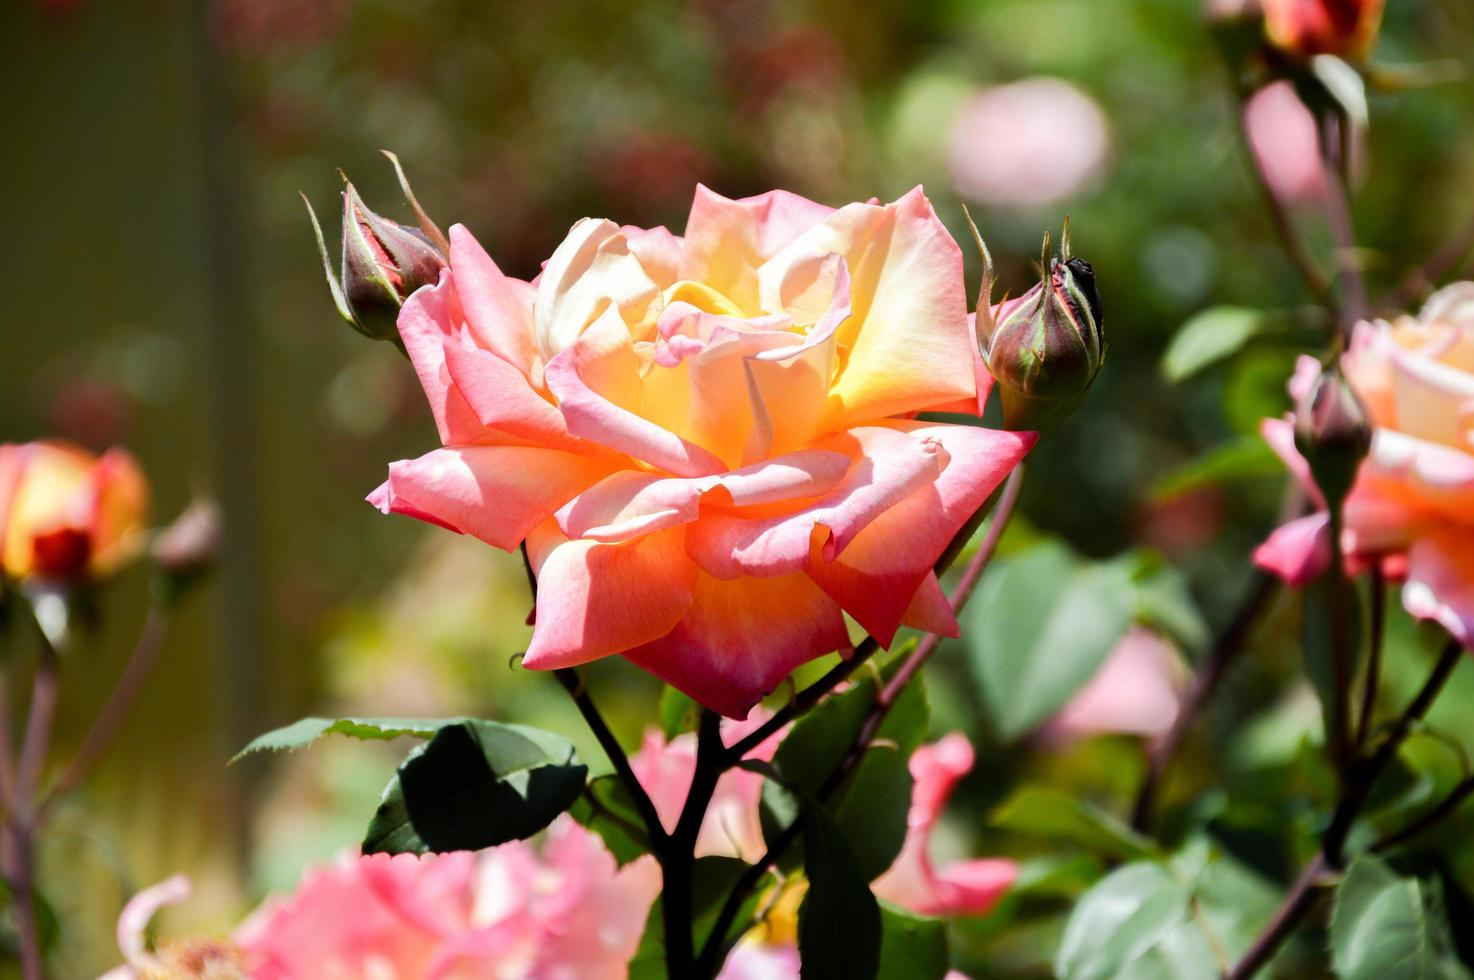 Pink rose in sunlight photo